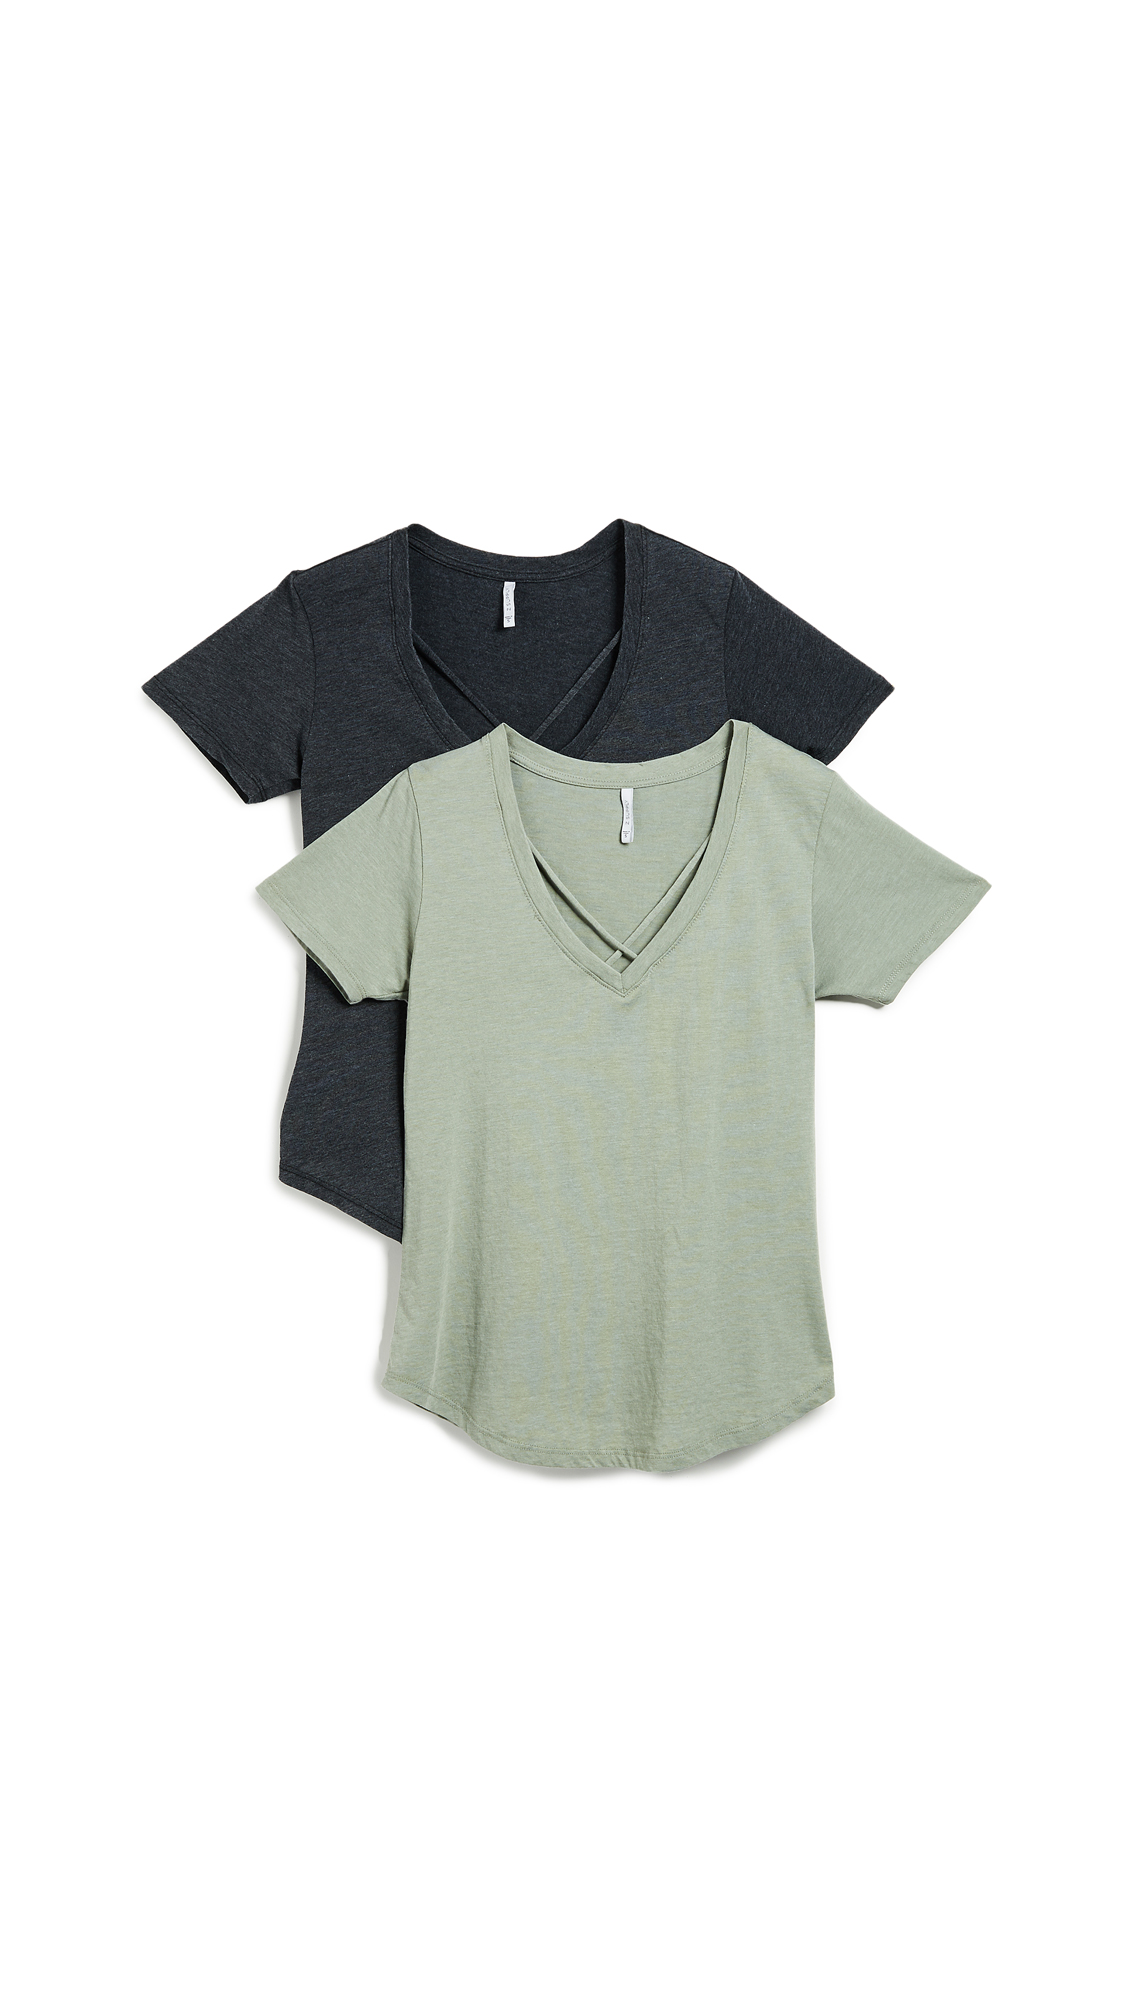 Z SUPPLY THE CROSSROAD TEE 2 PACK